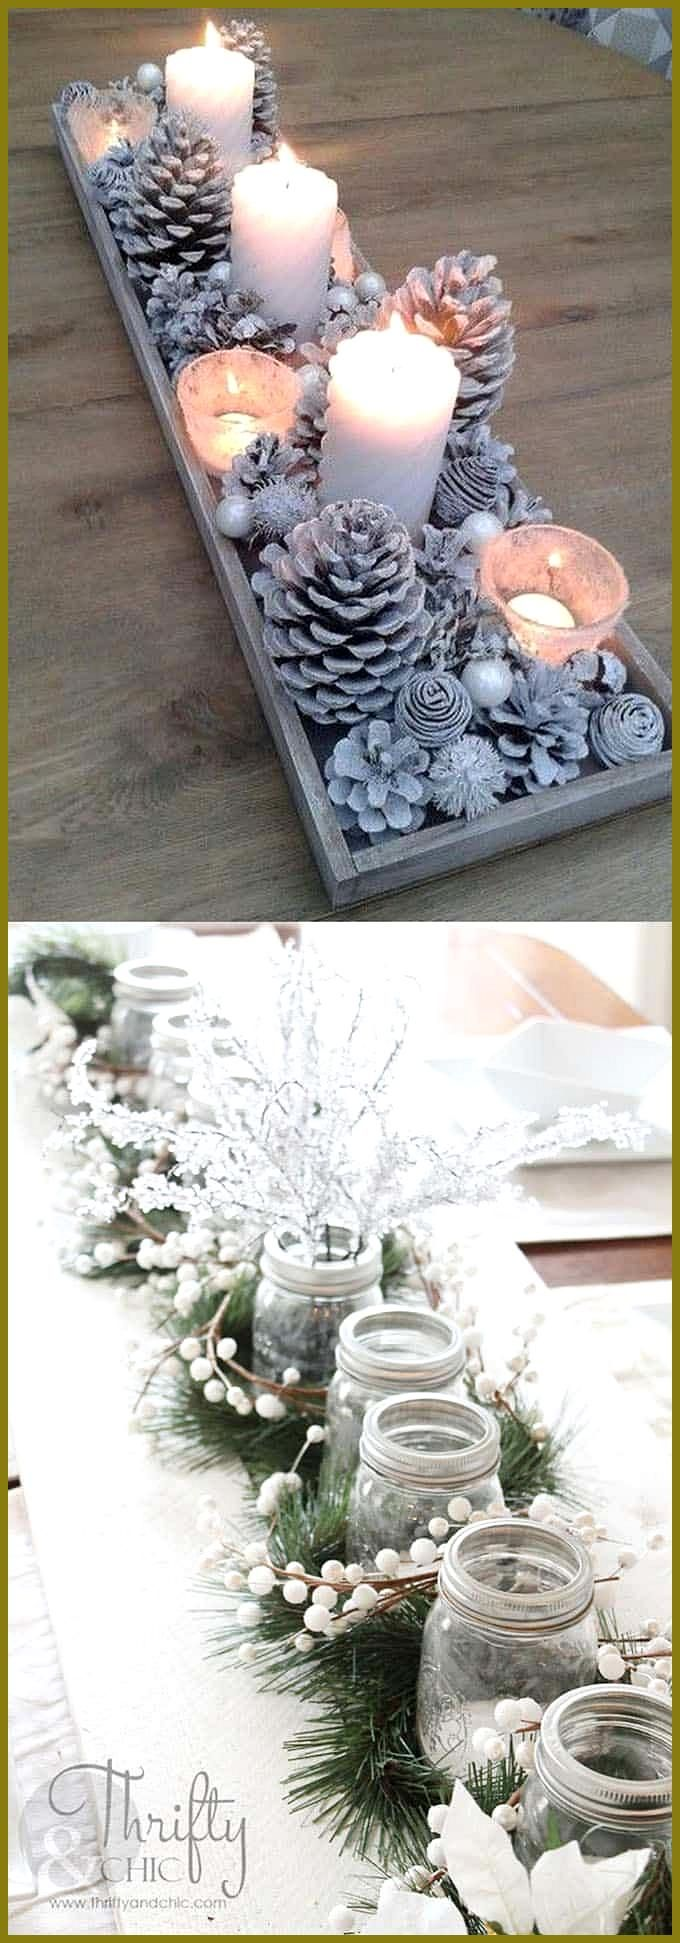 27 Gorgeous DIY Thanksgiving 038 Christmas Table Decorations 038 Centerpieces 27 gorgeous 038 easy